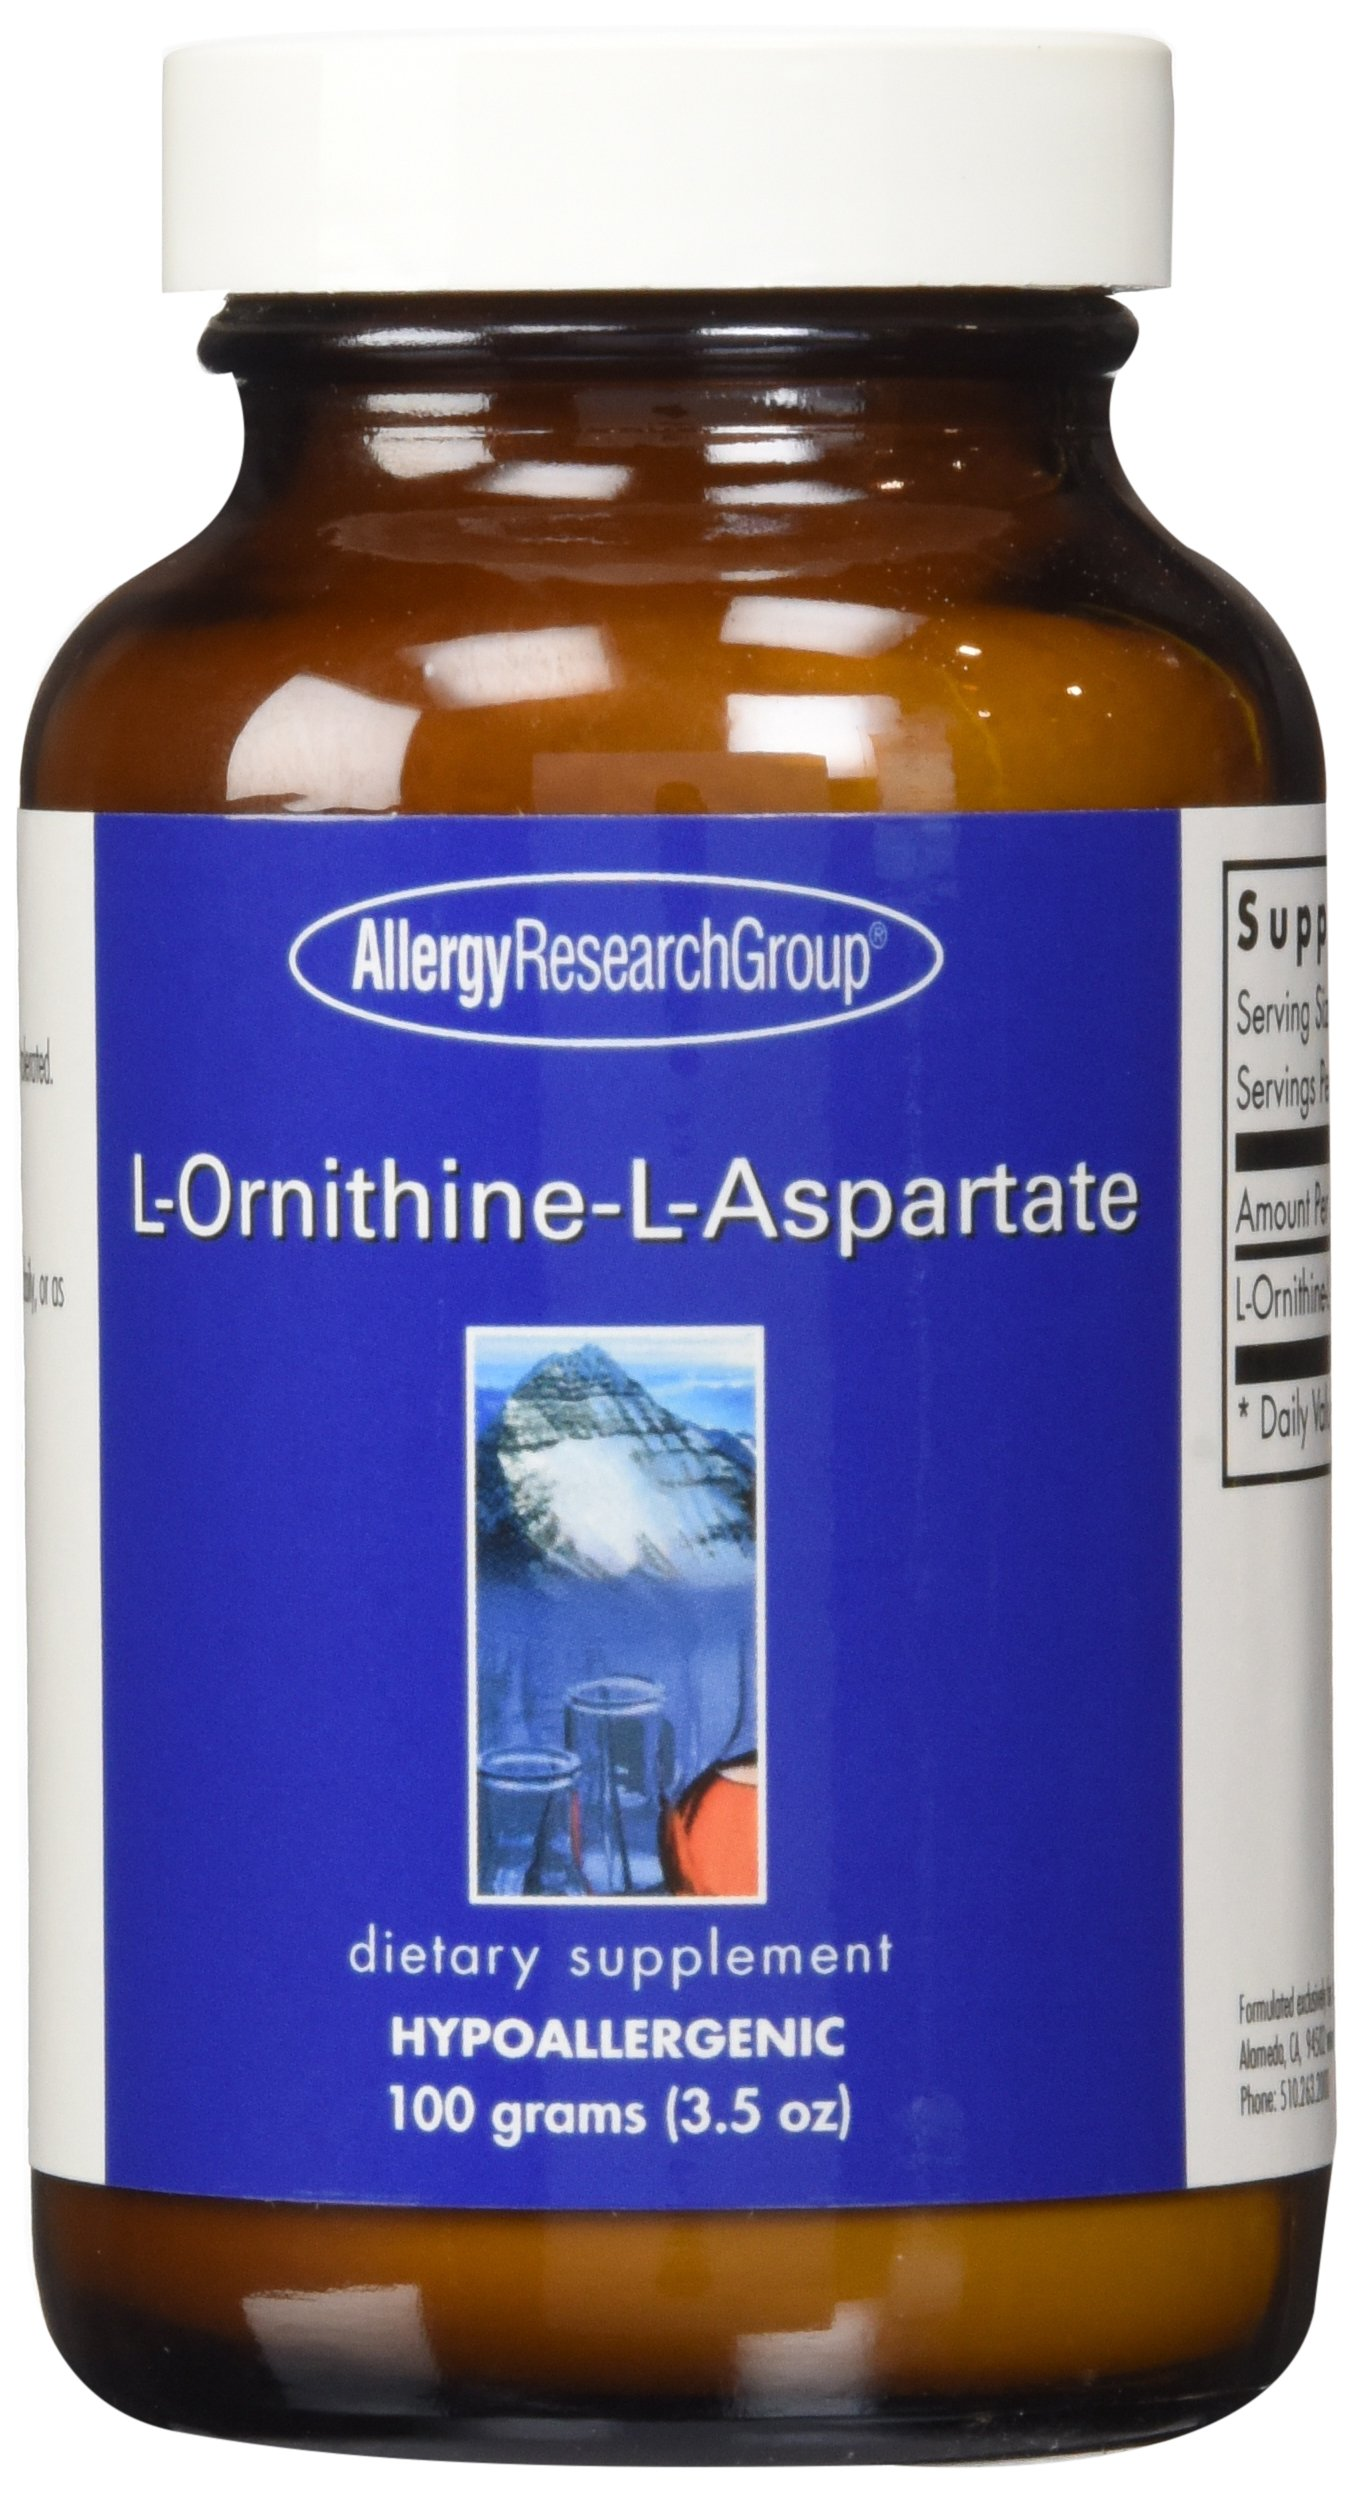 Allergy Research Group - L-Ornithine-L-Aspartate Powder - 100 g by Allergy Research Group